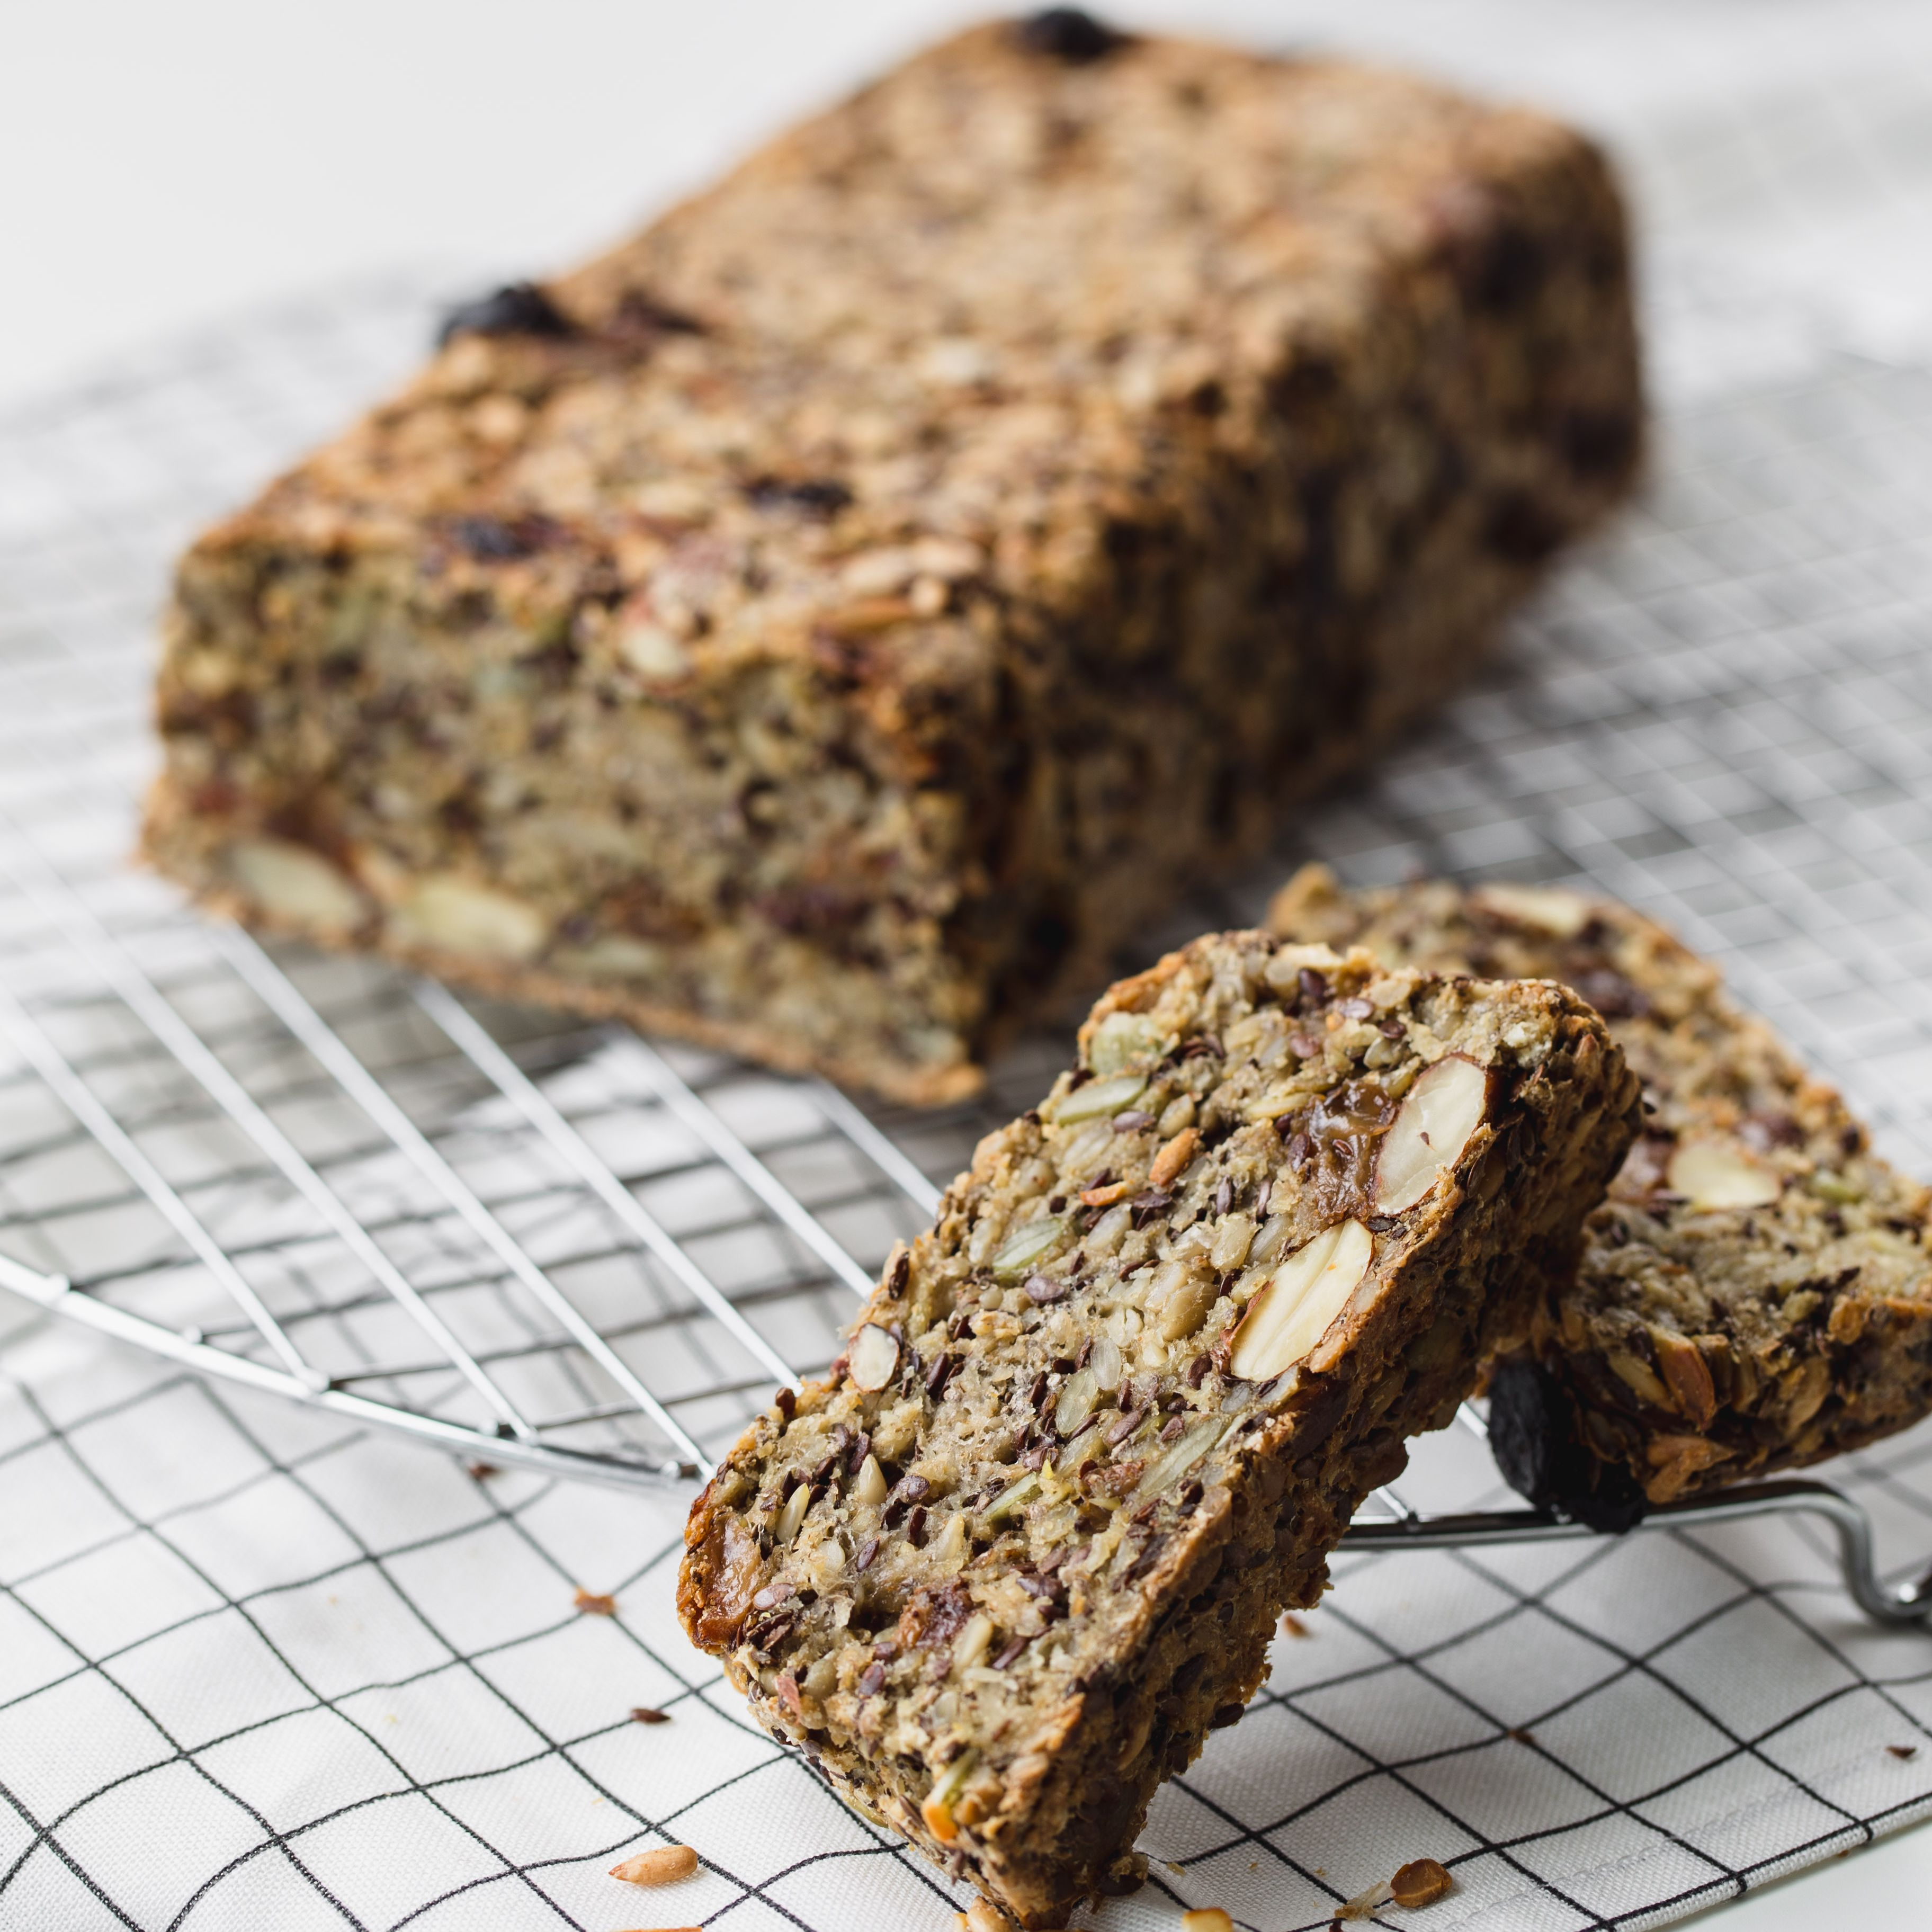 Loaf of Homemade Gluten-Free Bread with nuts